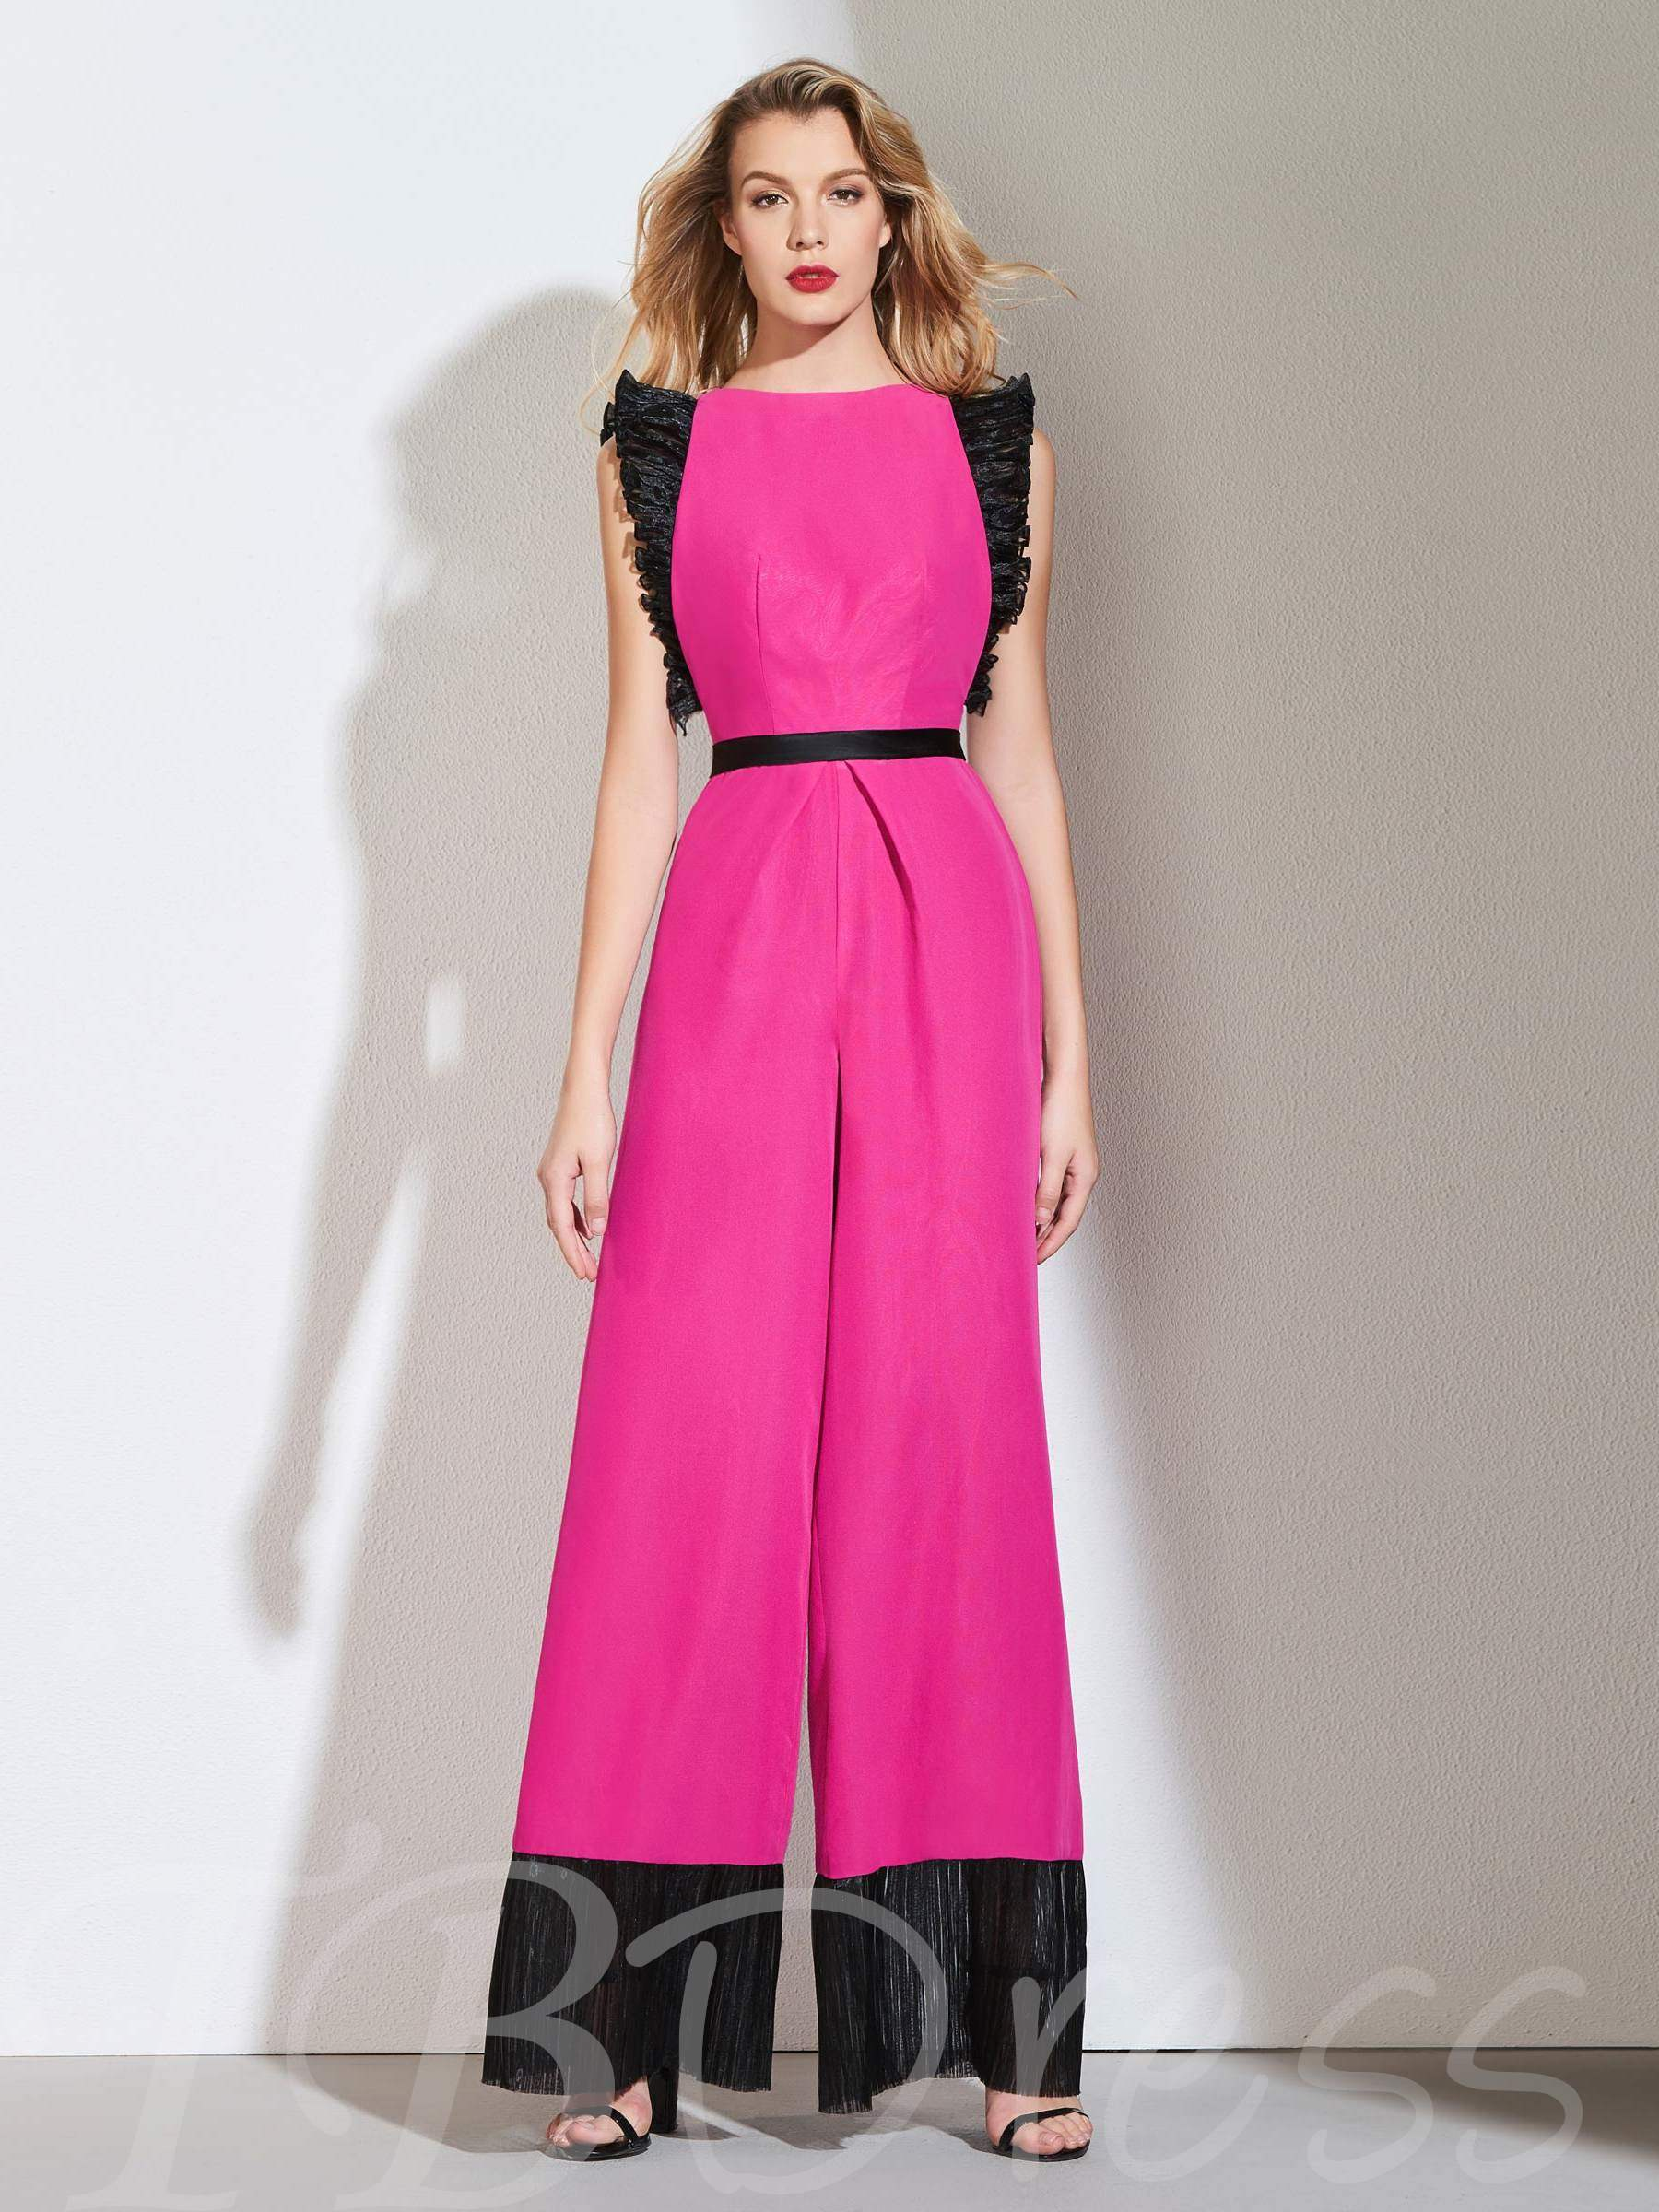 Buy A-Line Bateau Sashes Draped Evening Jumpsuits, Spring,Summer,Fall,Winter, 13364671 for $120.99 in TBDress store